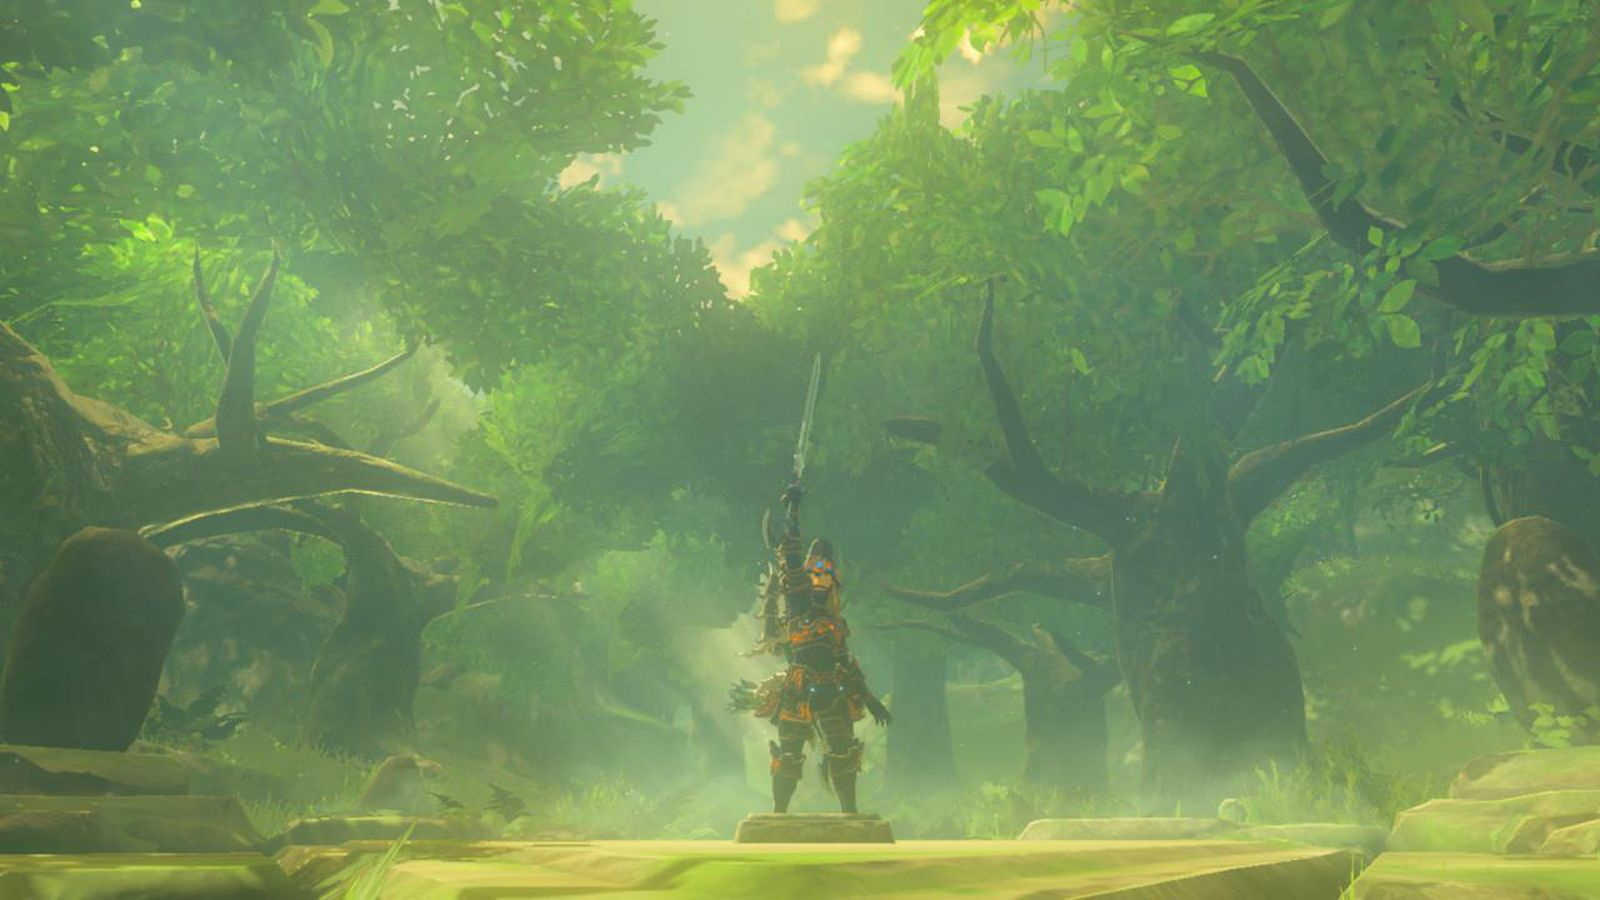 The Legend Of Zelda Hd Wallpaper Zelda Breath Of The Wild Is Playable At 4k On The Pc